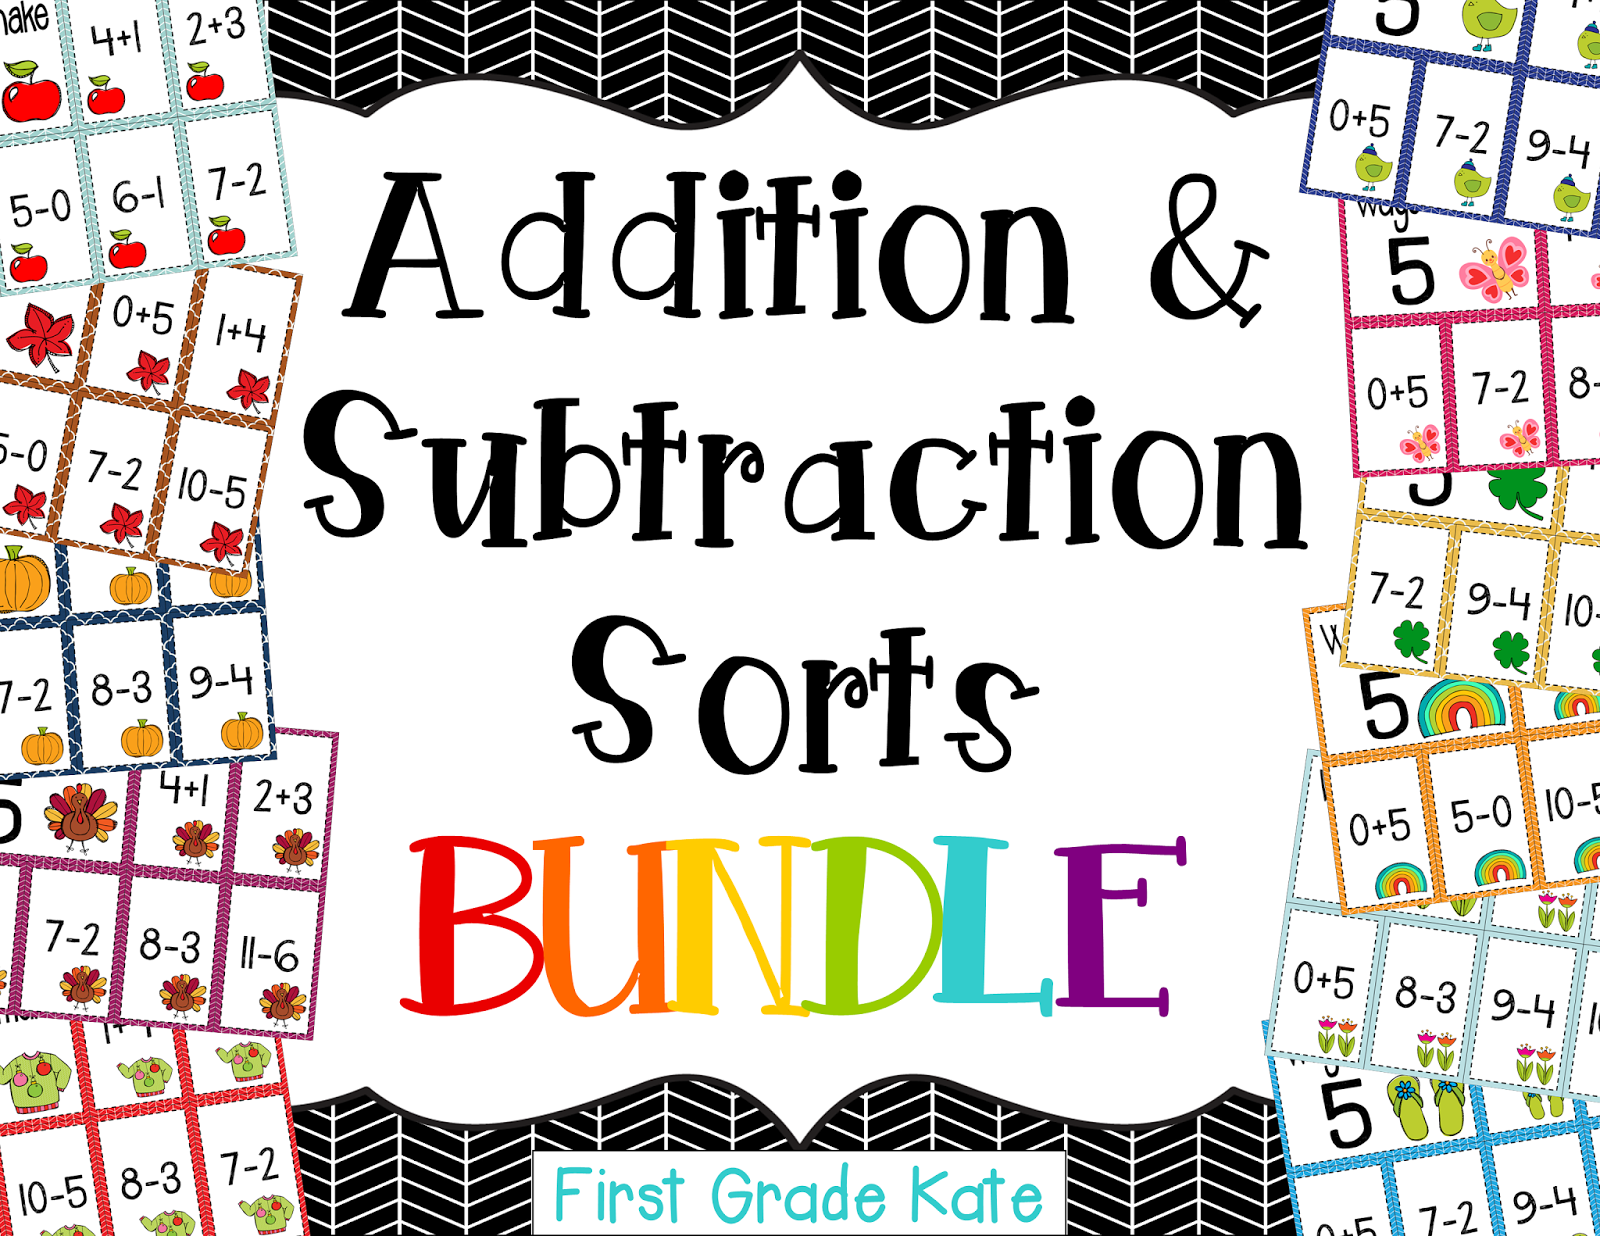 http://www.teacherspayteachers.com/Product/Addition-Subtraction-Fluency-Sorts-BUNDLE-1055813